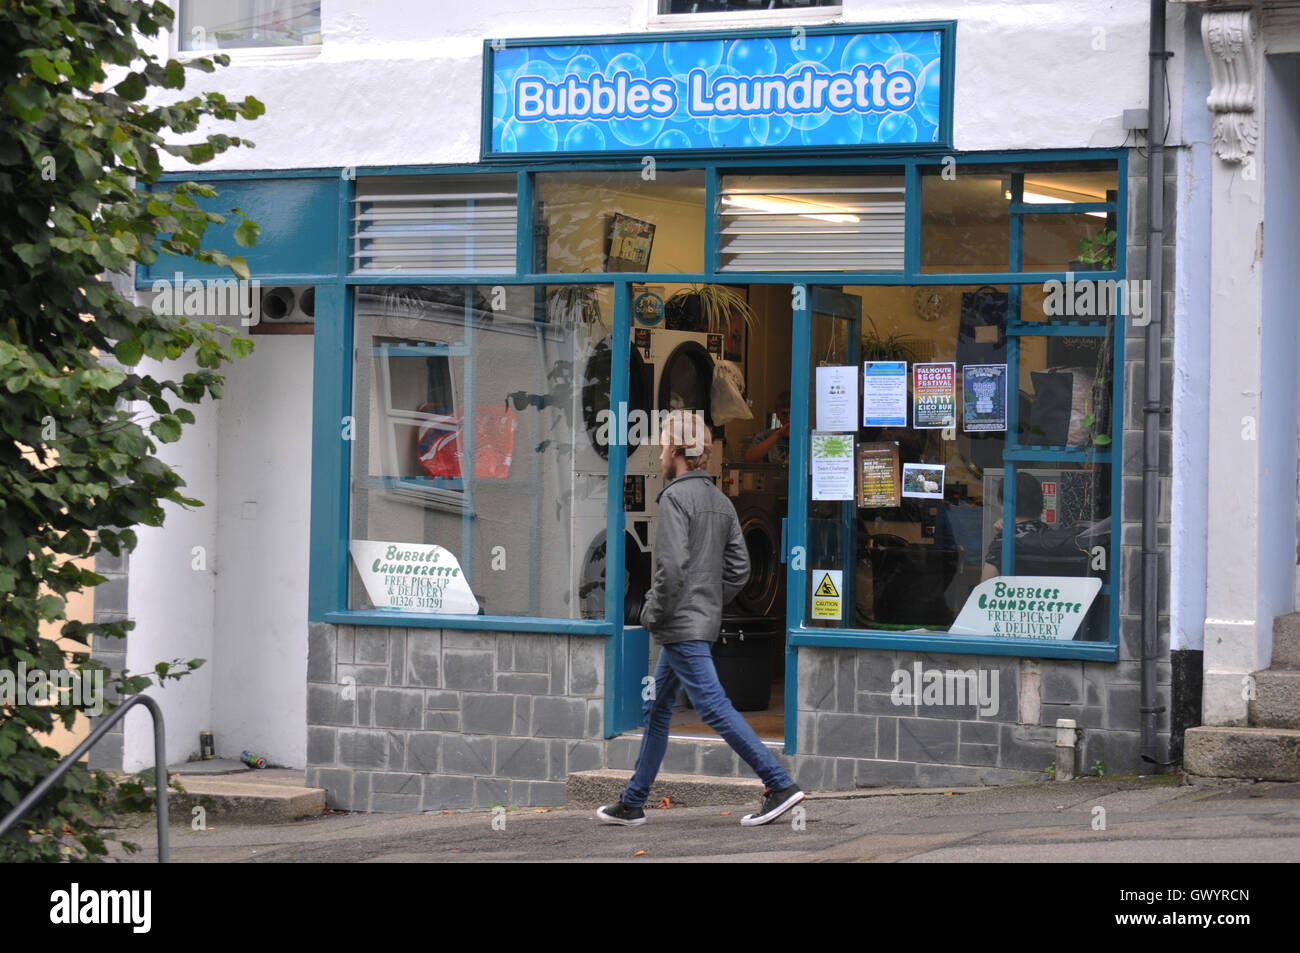 Student walking past a laundrette in Falmouth, Cornwall - Stock Image